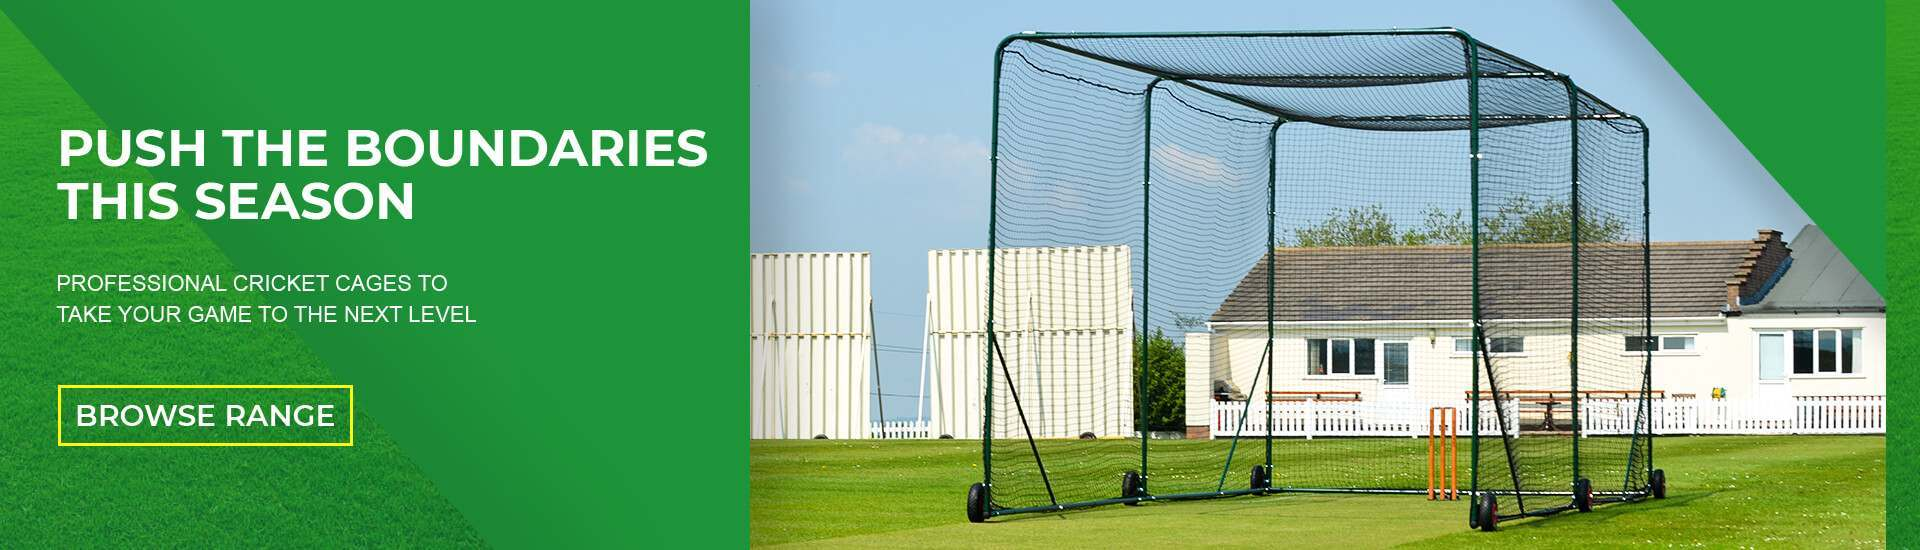 Professional Cricket Cages